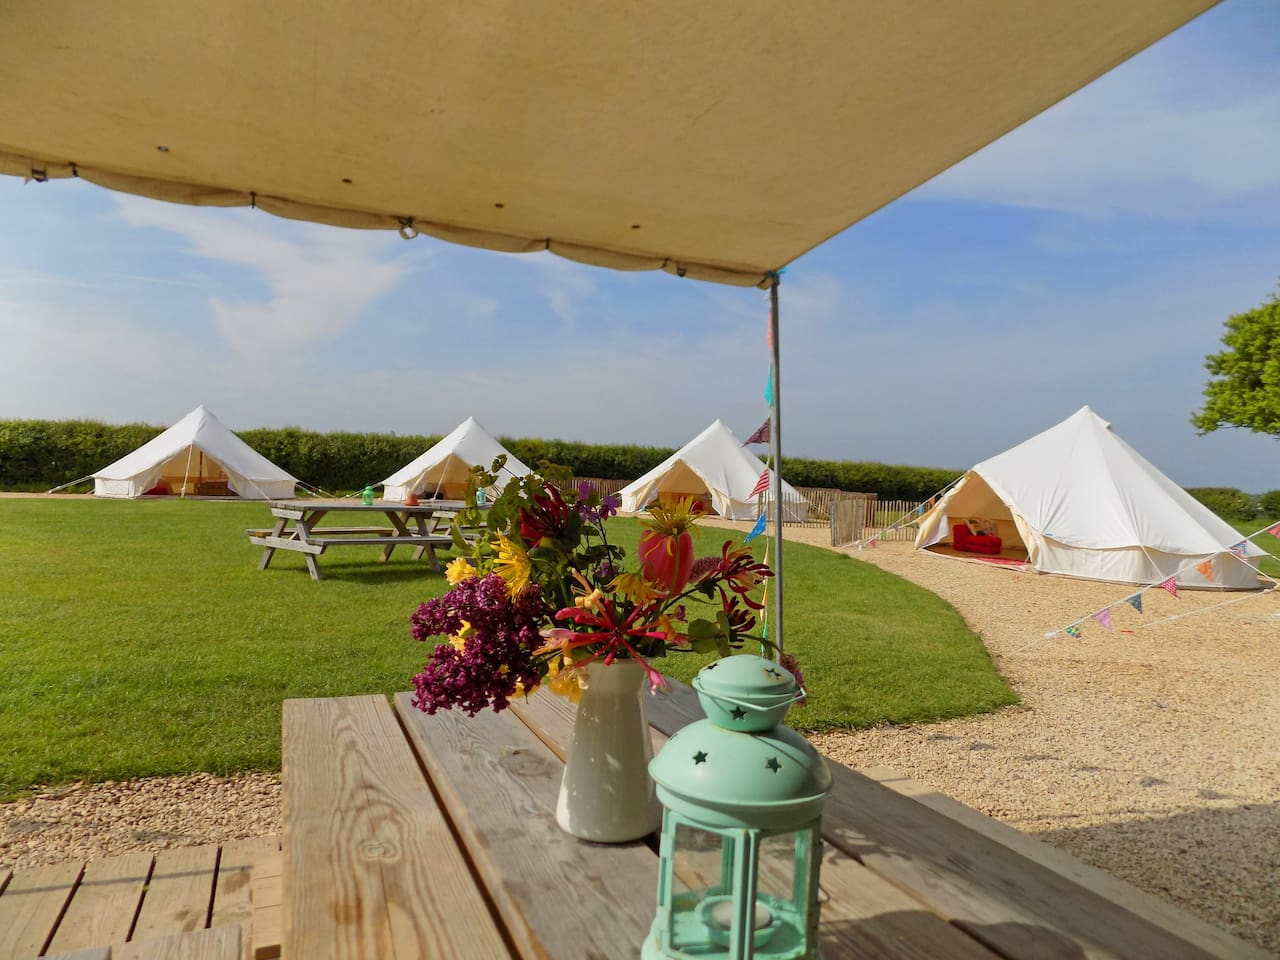 The Belltents from the kitchen